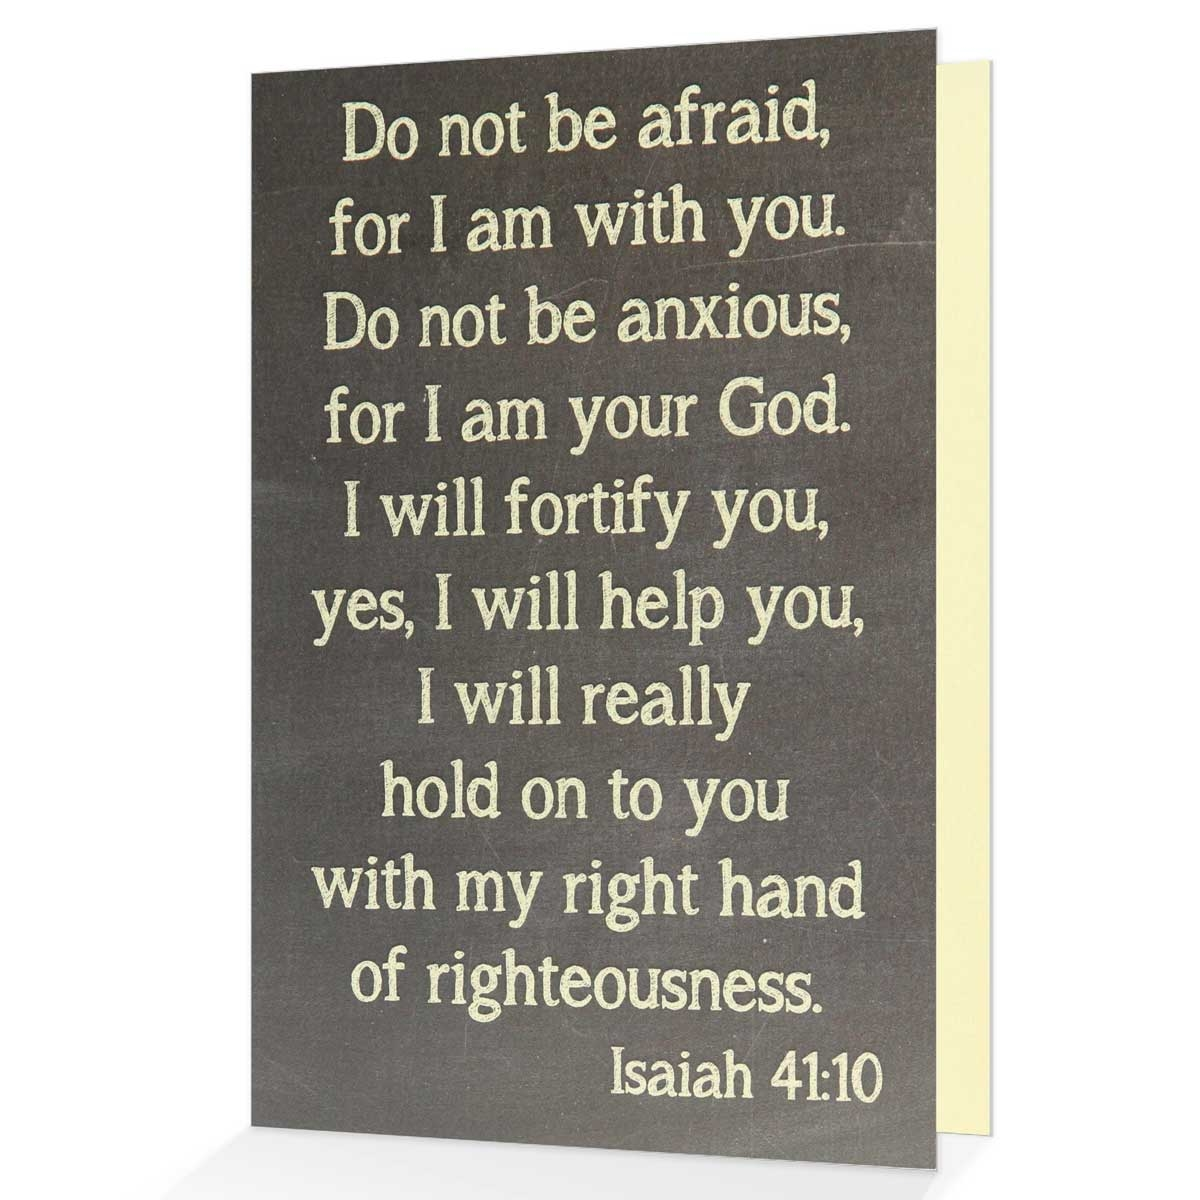 Isaiah 4110 greeting card spiritually encouraging card view larger photo email m4hsunfo